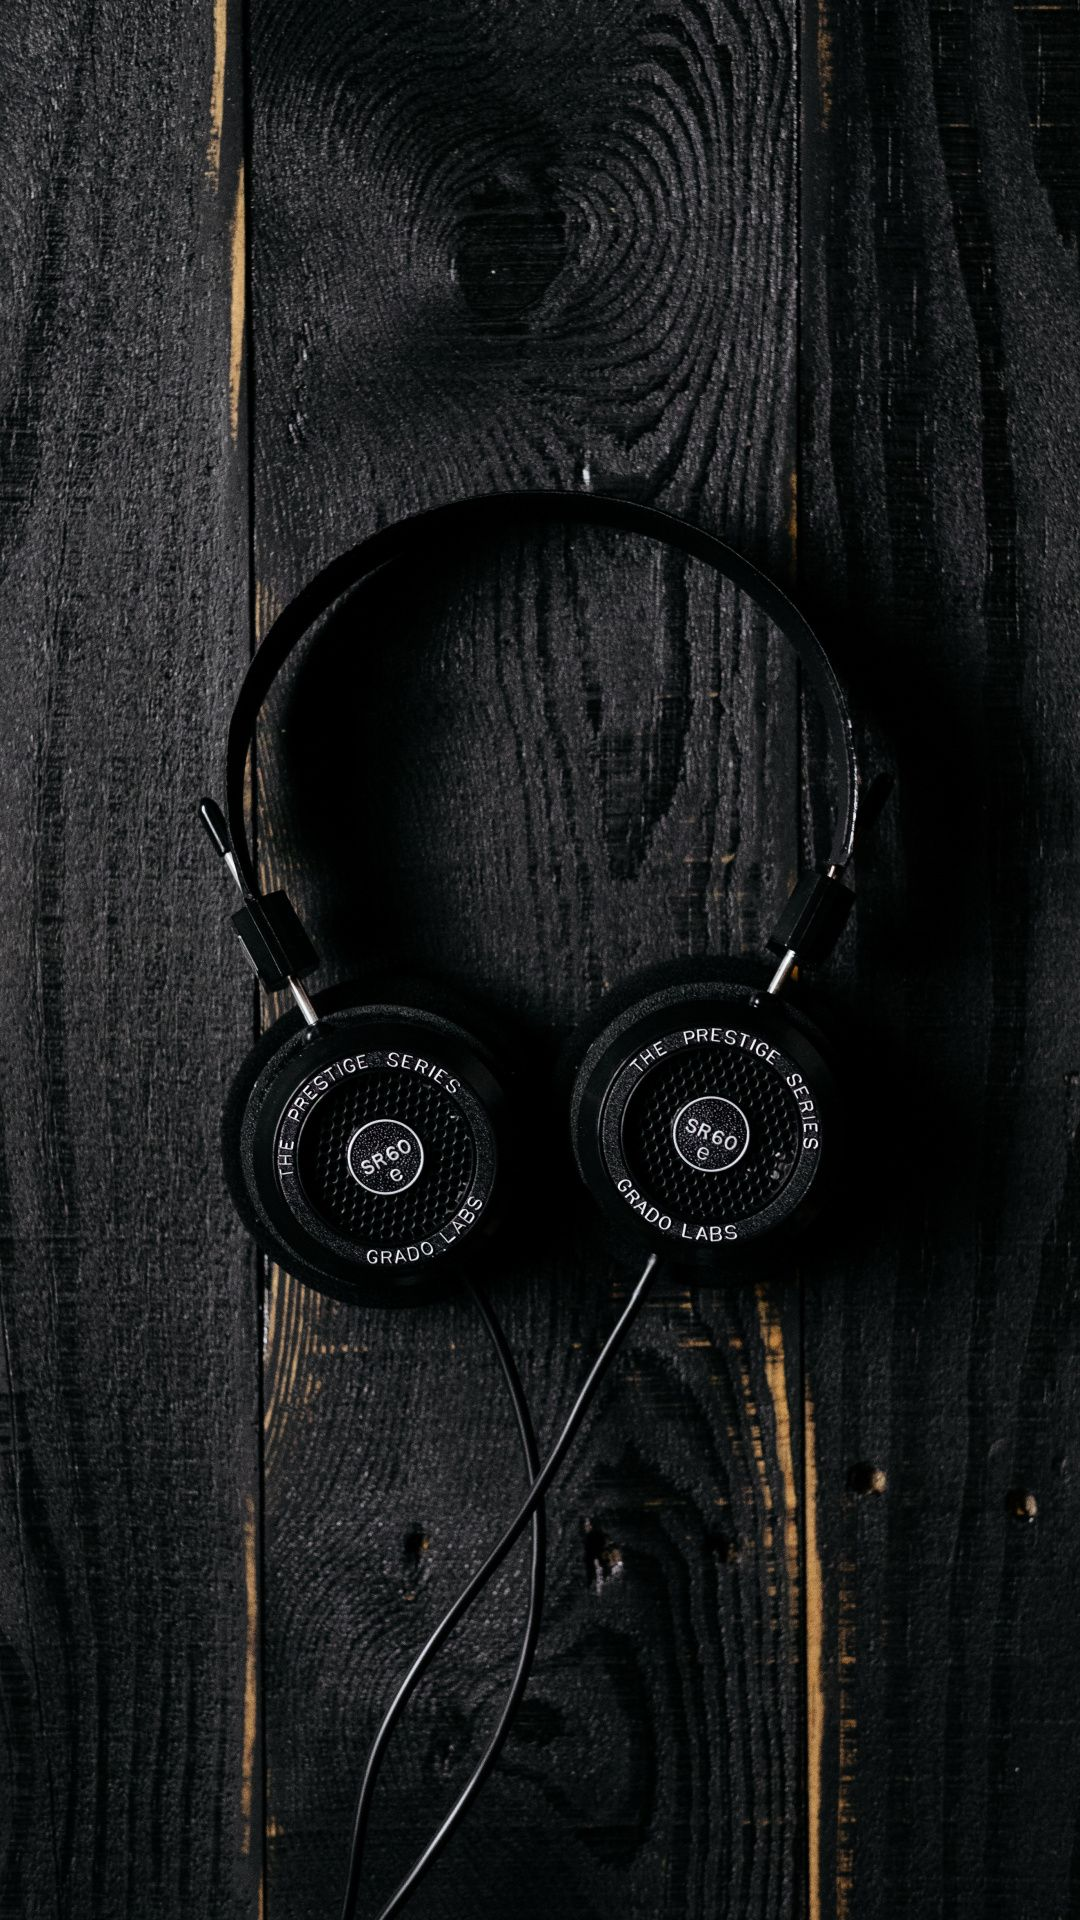 Wallpapers Electronic Device Headset Gadget Headphones Technology Iphone Wallpaper Music Technology Wallpaper Music Wallpaper